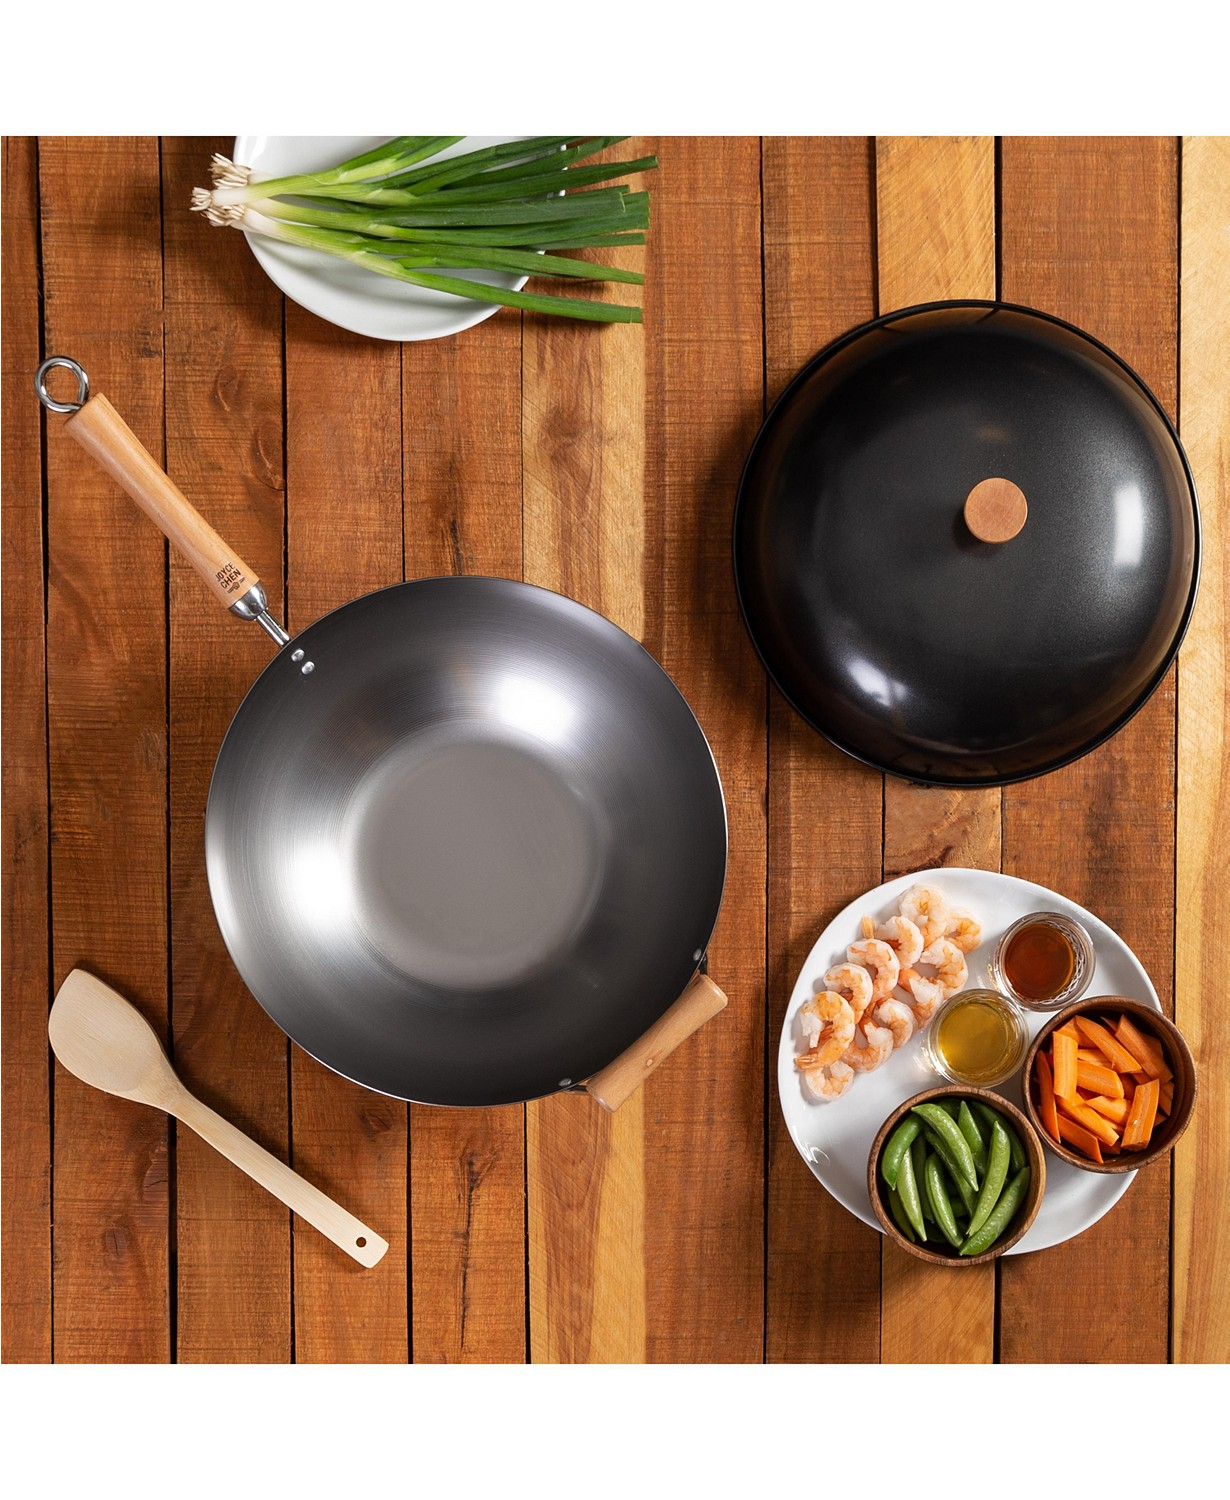 Lowest Price of the Season Cookware